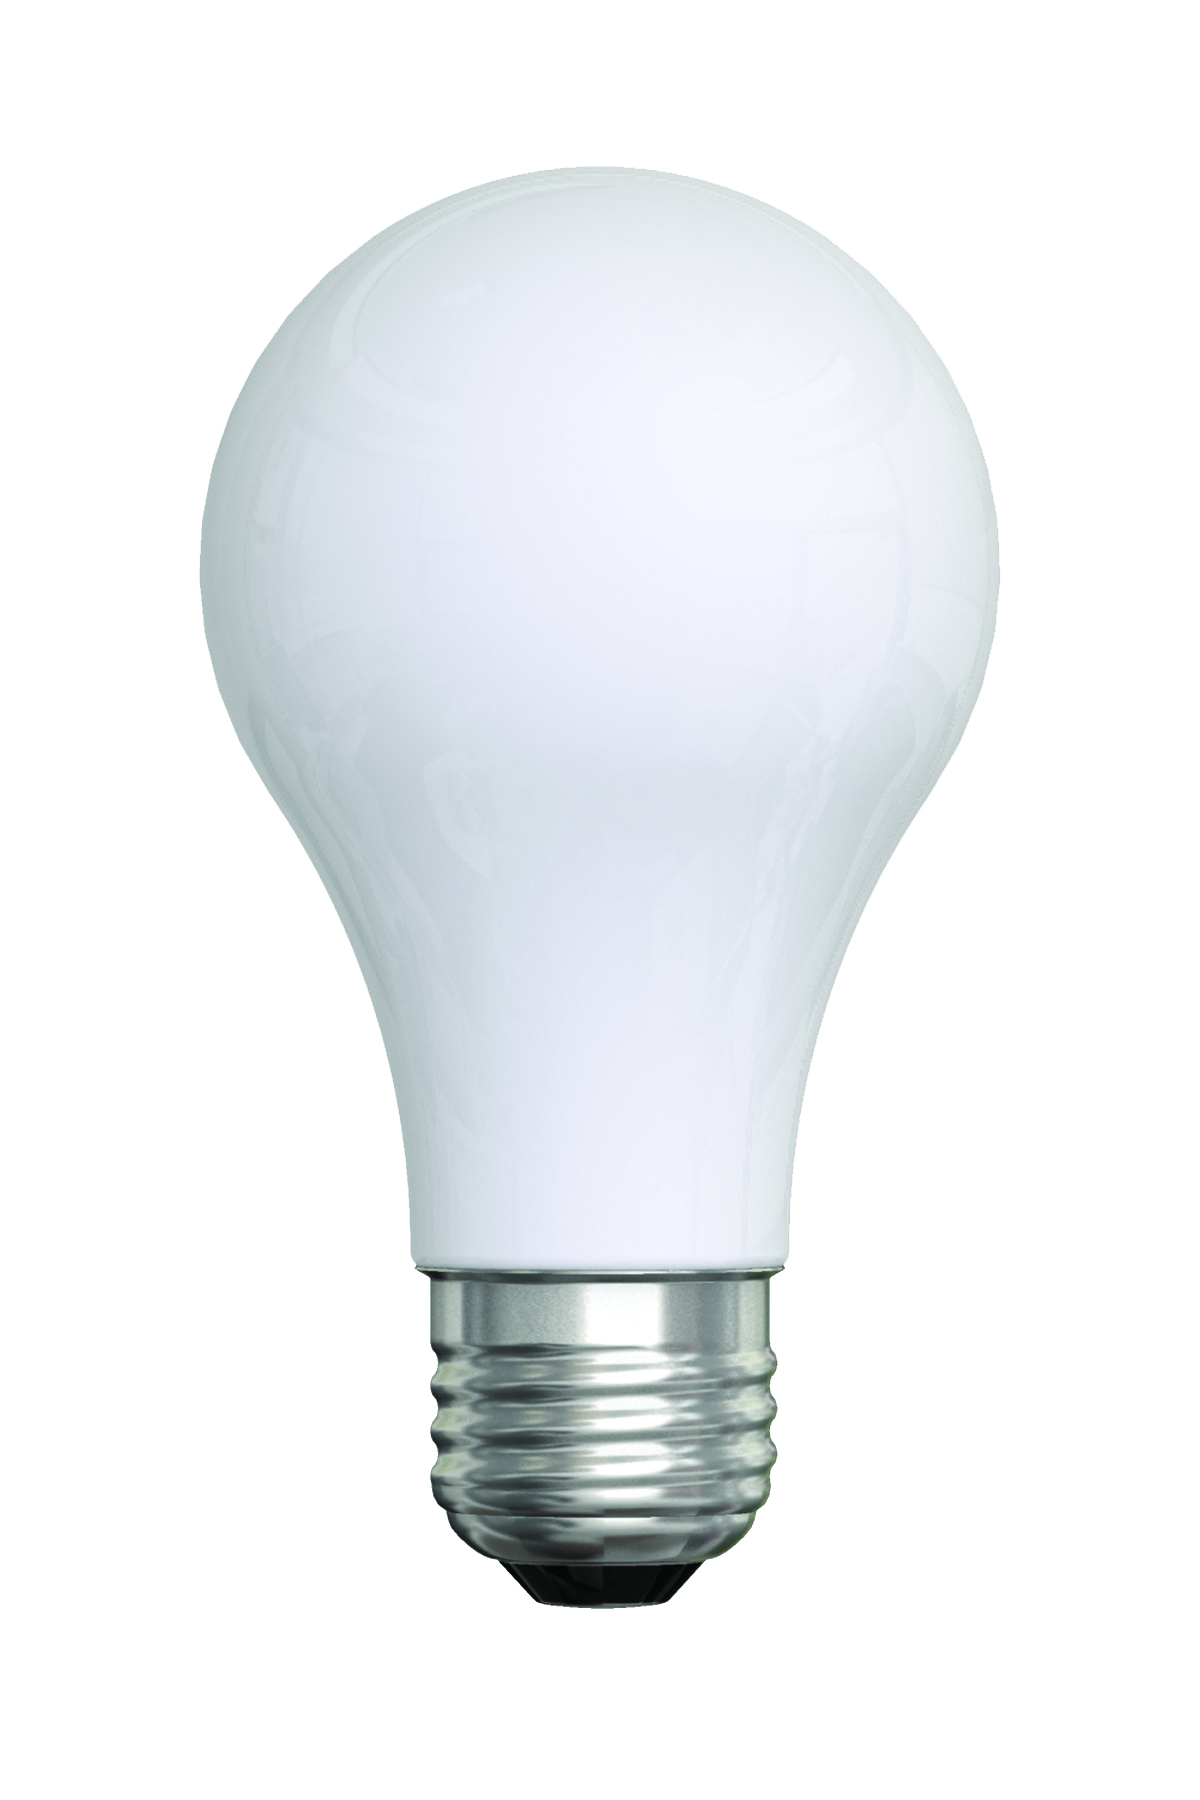 Ge S Energy Efficient Soft White Halogen Light Bulb Offers Big Savings Ge Lighting North